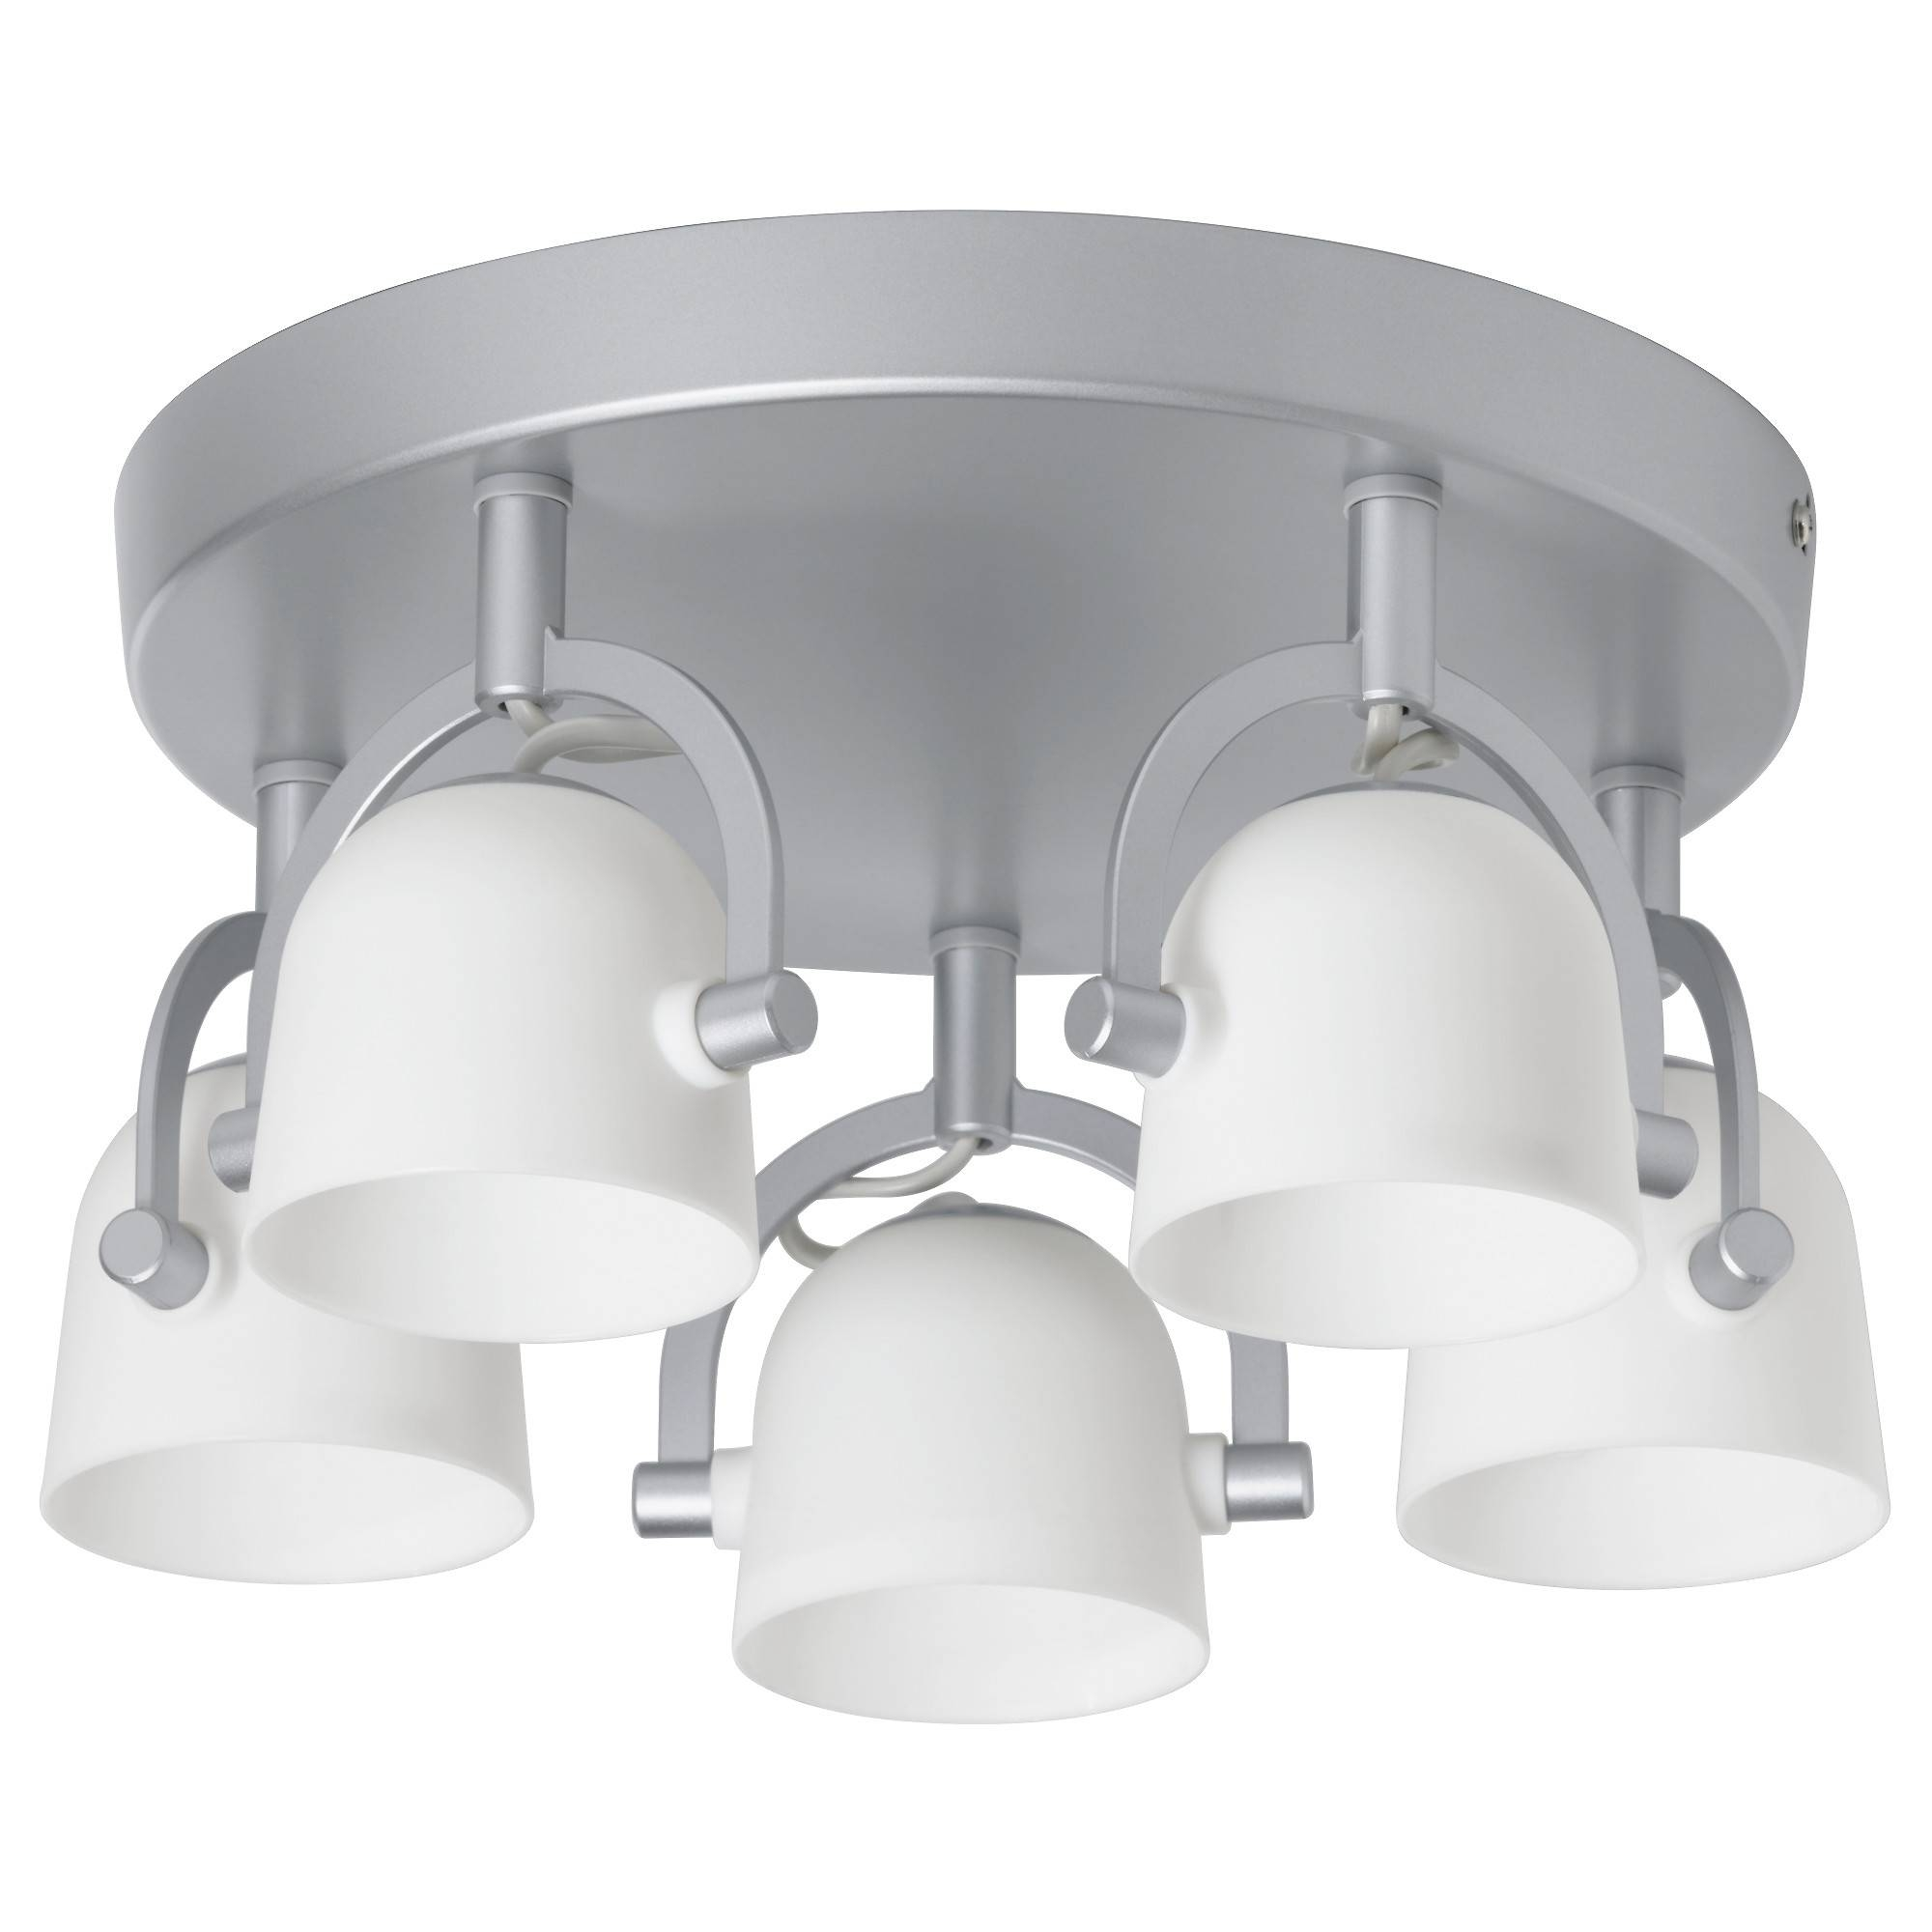 Ceiling Lights & Lamps – Ikea Intended For Ikea Recessed Lighting (View 4 of 15)